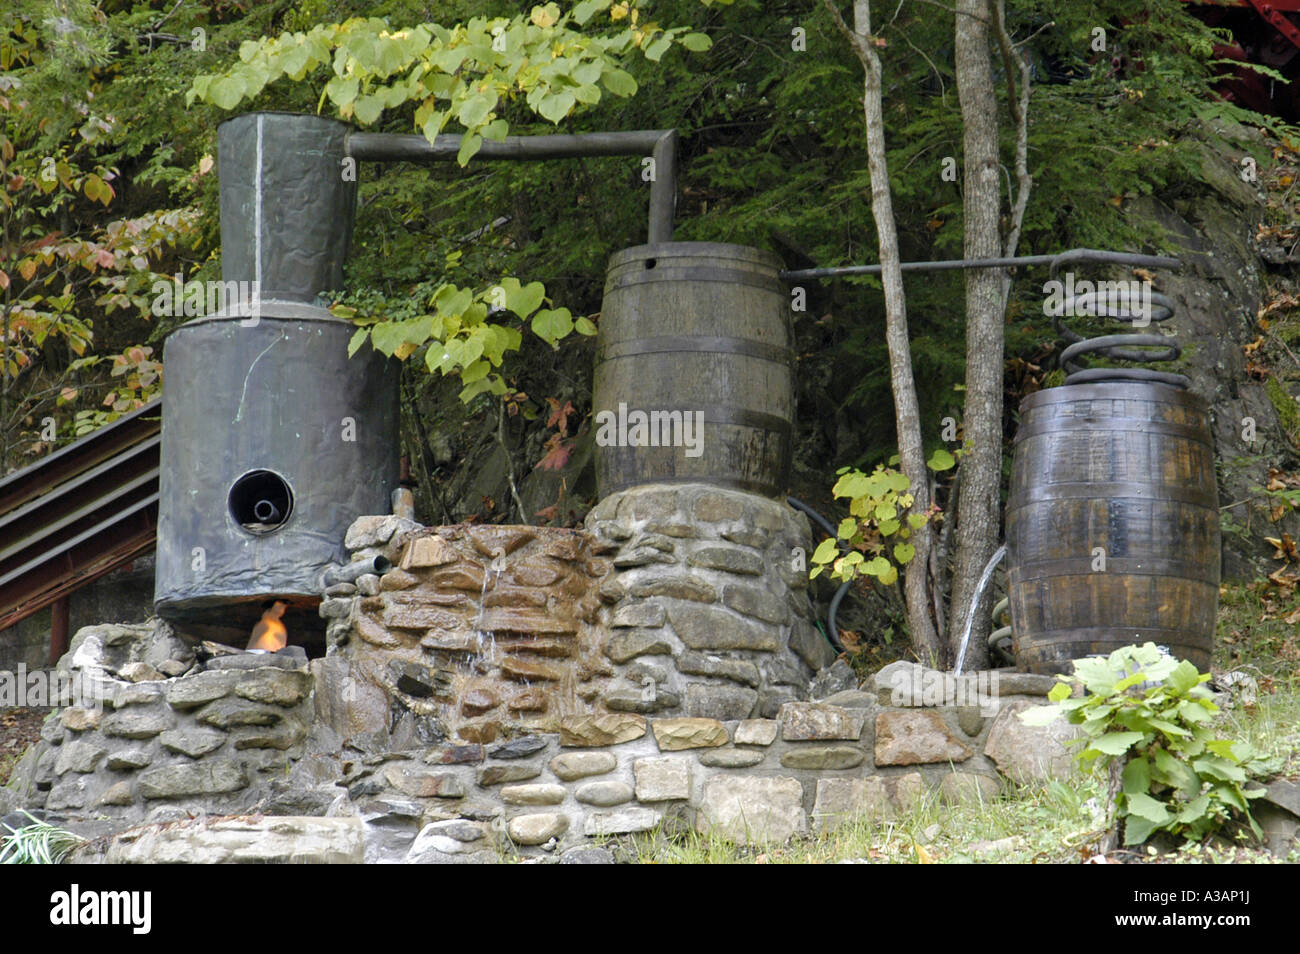 P25 094 Smoky Mountains, Moonshine Still at Hillbilly Golf, Gatlinburg TN - Stock Image